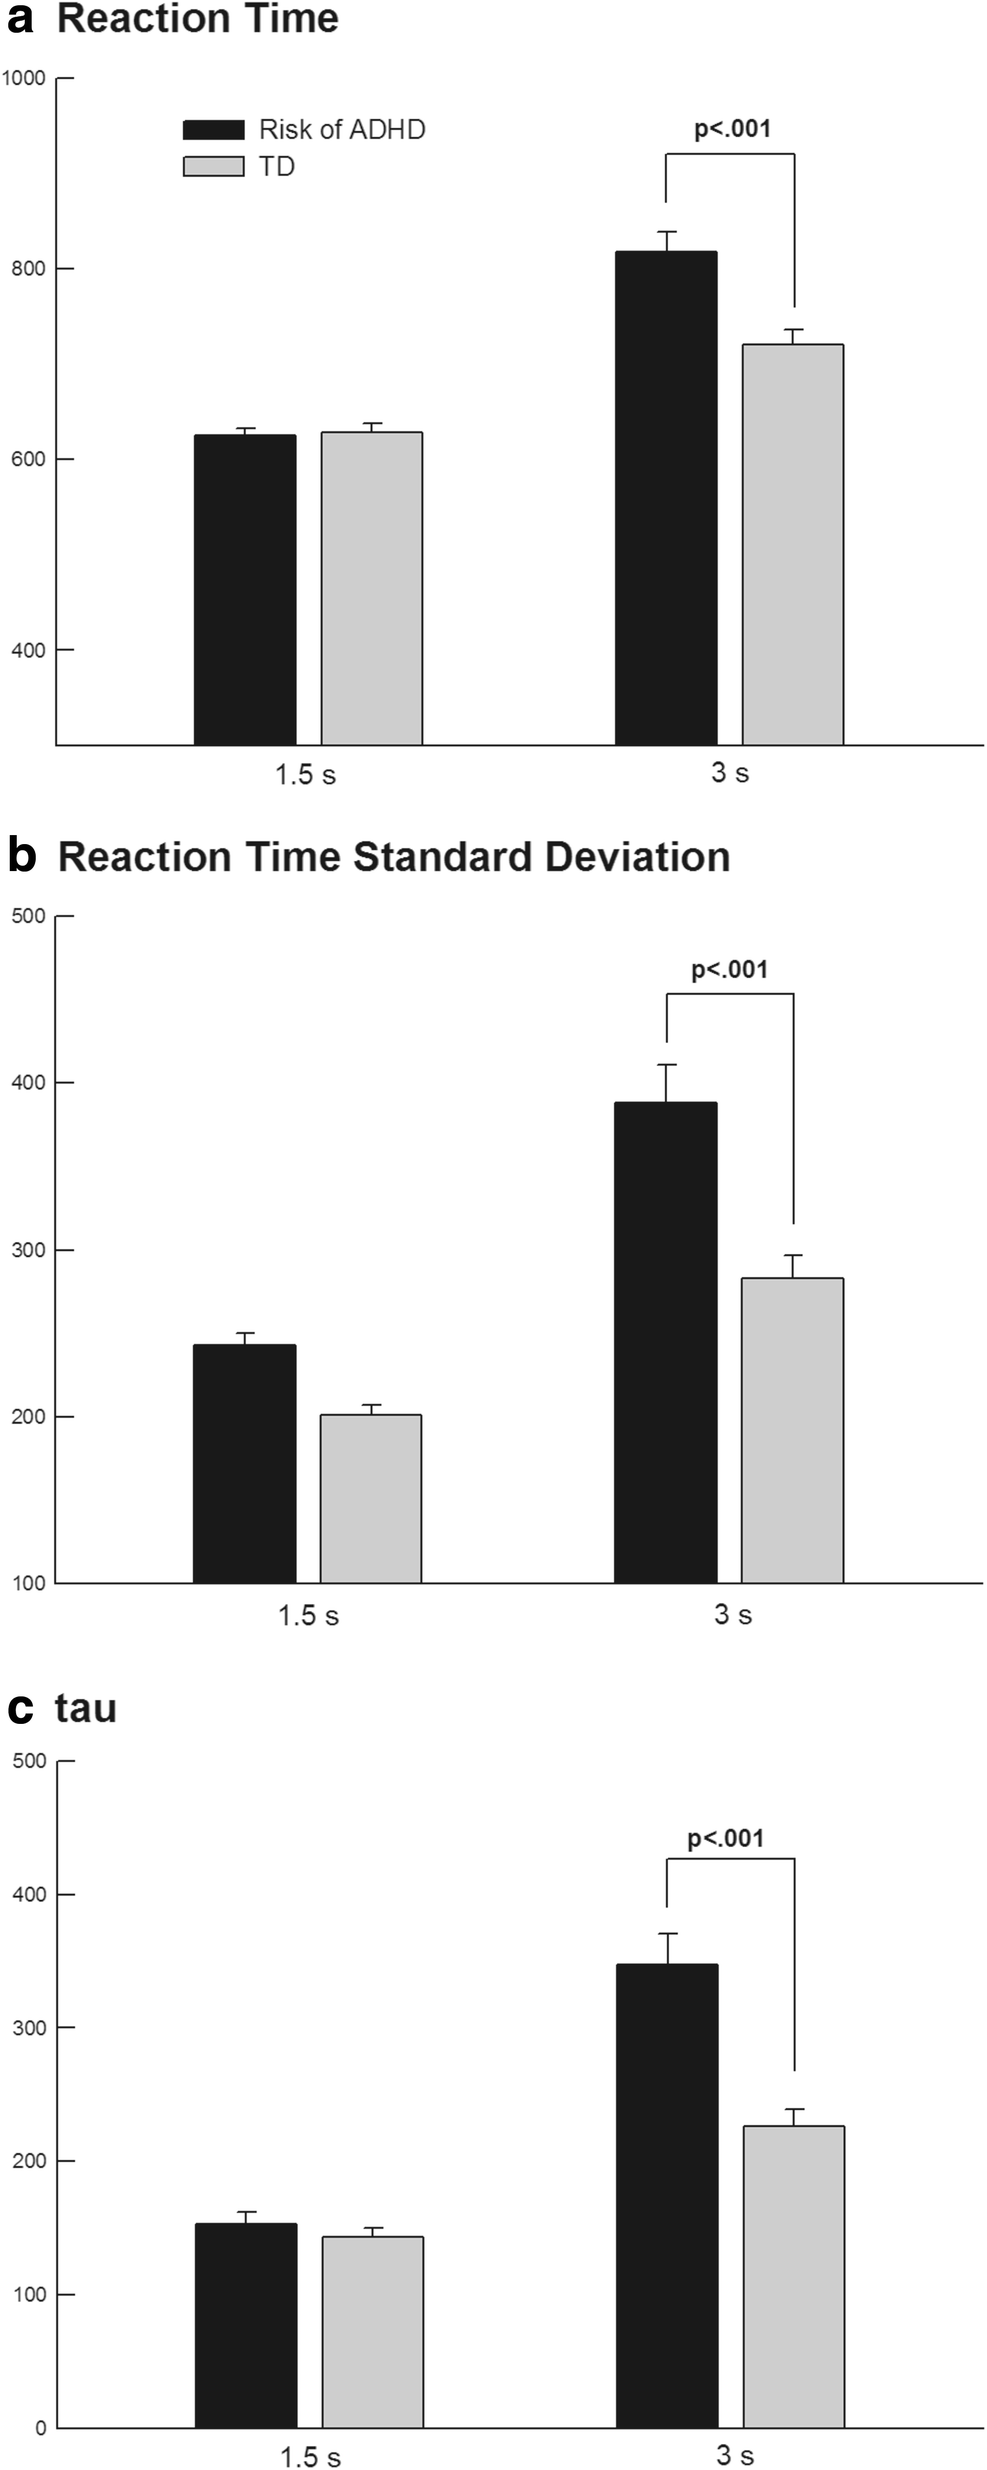 Exploring the Variability in Reaction Times of Preschoolers